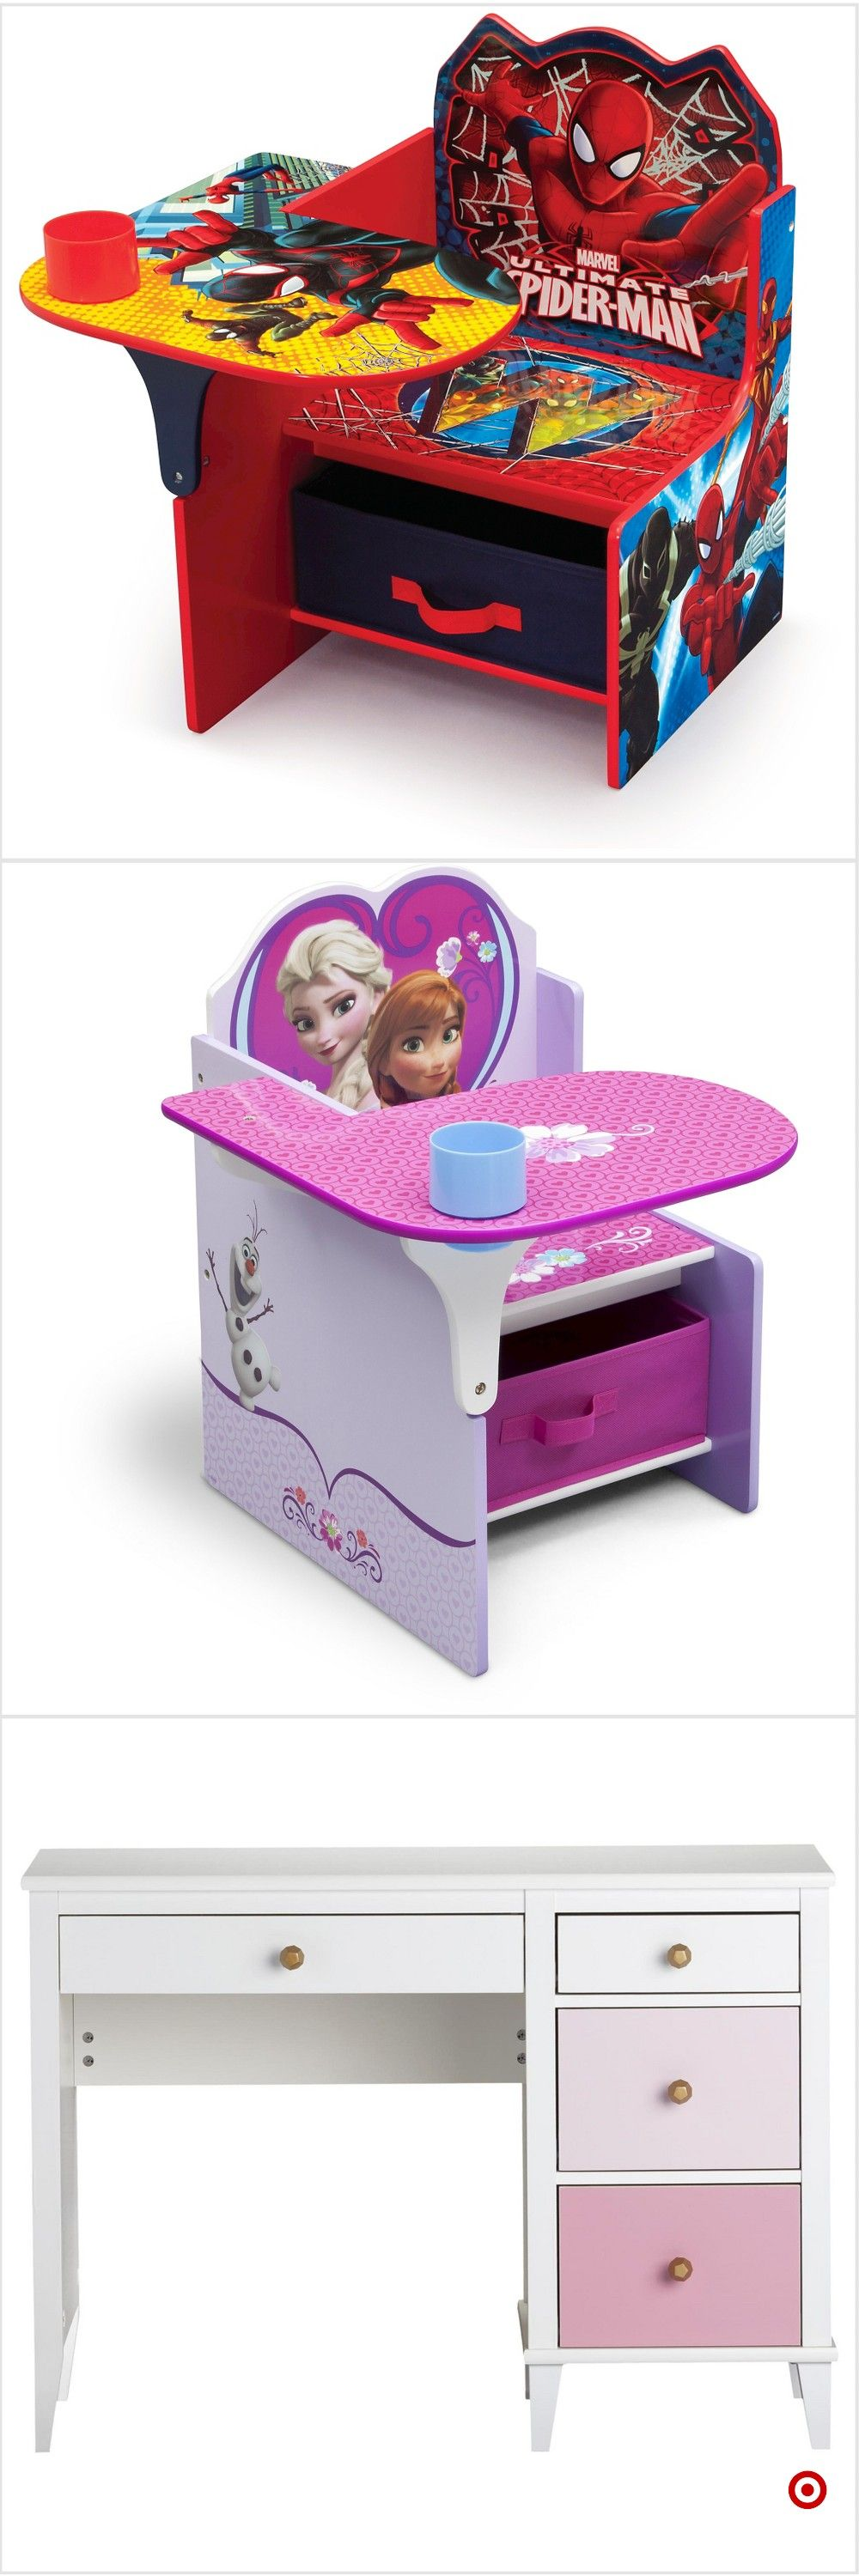 Shop Target For Kids Desk You Will Love At Great Low Prices Free Shipping On Orders Of 35 Or Free Same Day Pick Up I Kids Furniture Kids Room Kid Room Decor